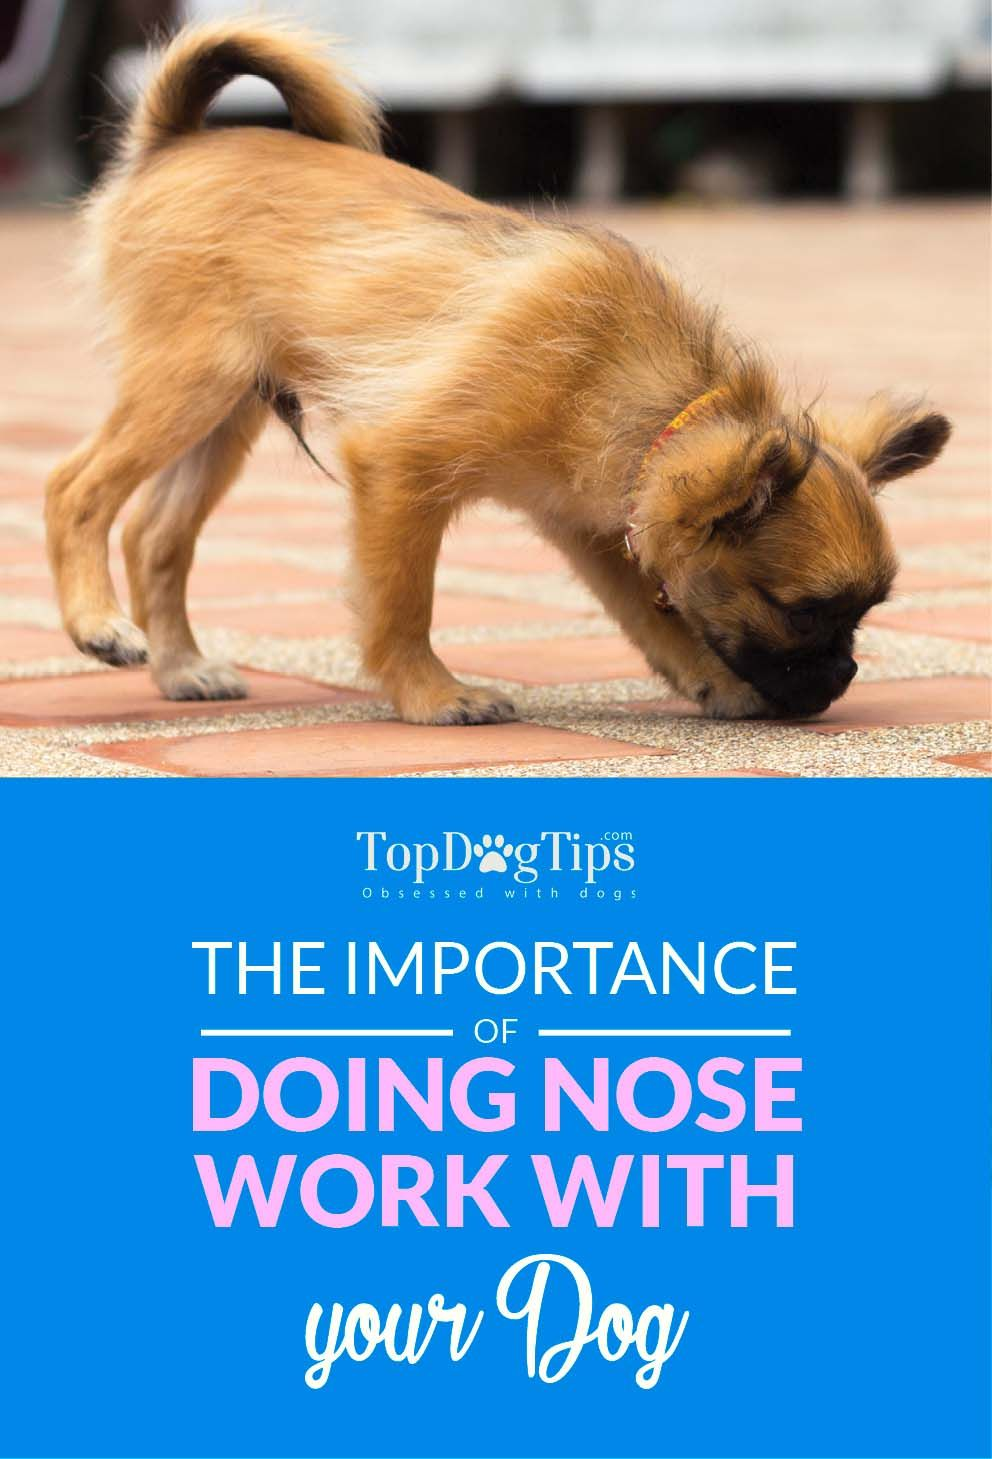 The Importance Of Nose Work For Dogs And How To Train Dogs For It